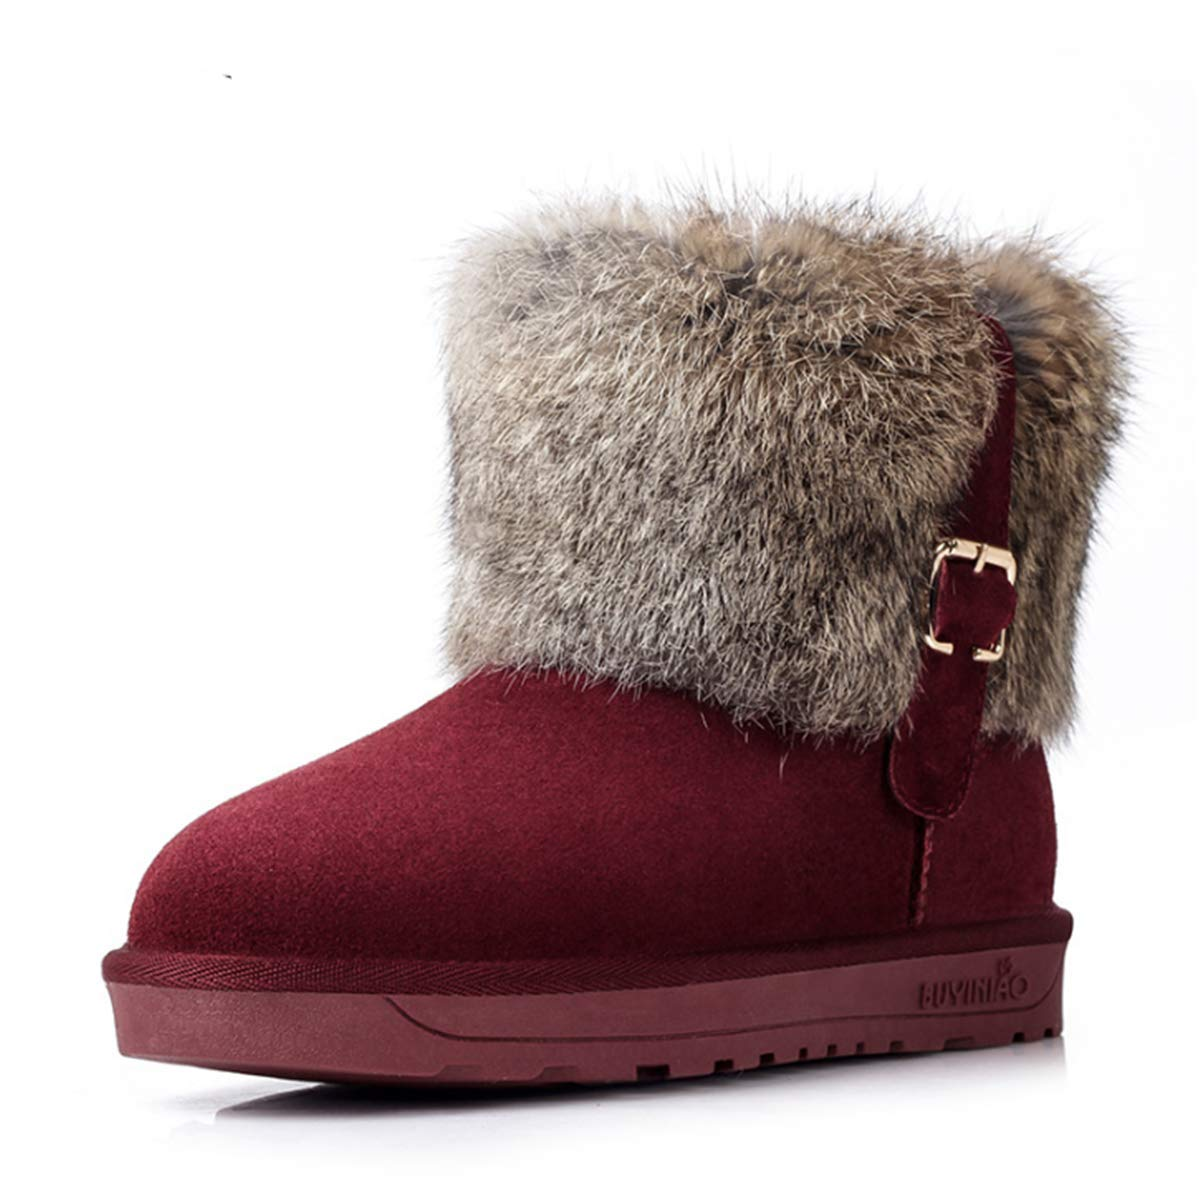 Bottes de Neige la Femme Vineux Hiver Chaud 2406 Chaussure de Neige Talon Plat Marron Bottes de Fourrée à Enfiler Noir Fourrure Peluche Bot Bottines Cuissardes Casual à la Maison-Fanessy Rouge Vineux 88c8466 - piero.space